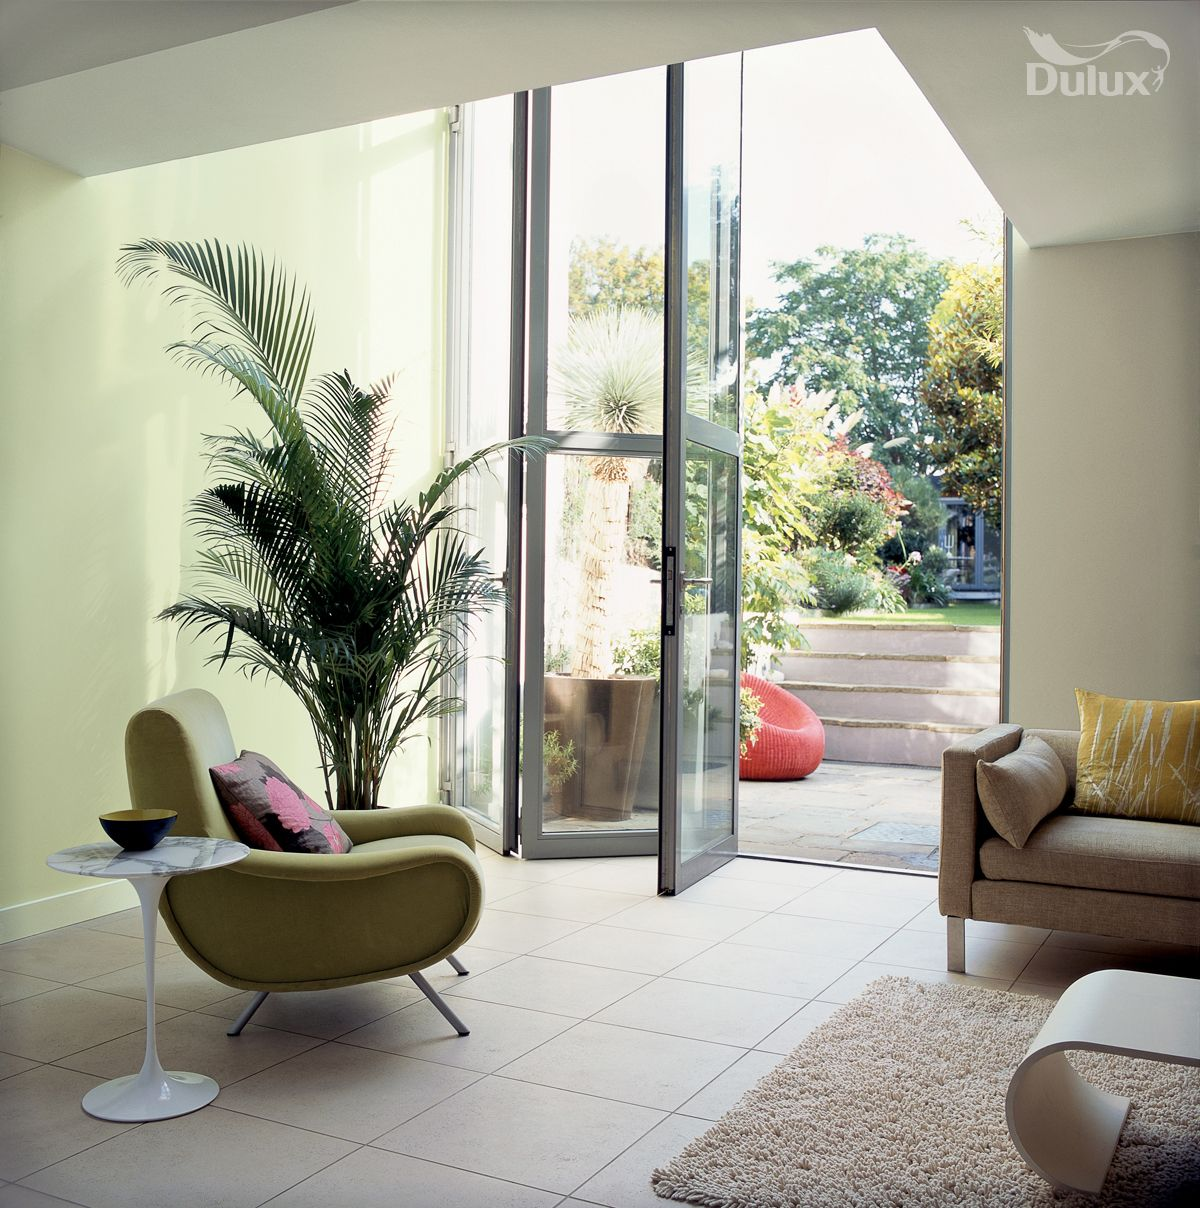 Decorating Ideas Dulux: Green Draws In Our Natural Surroundings And Evokes